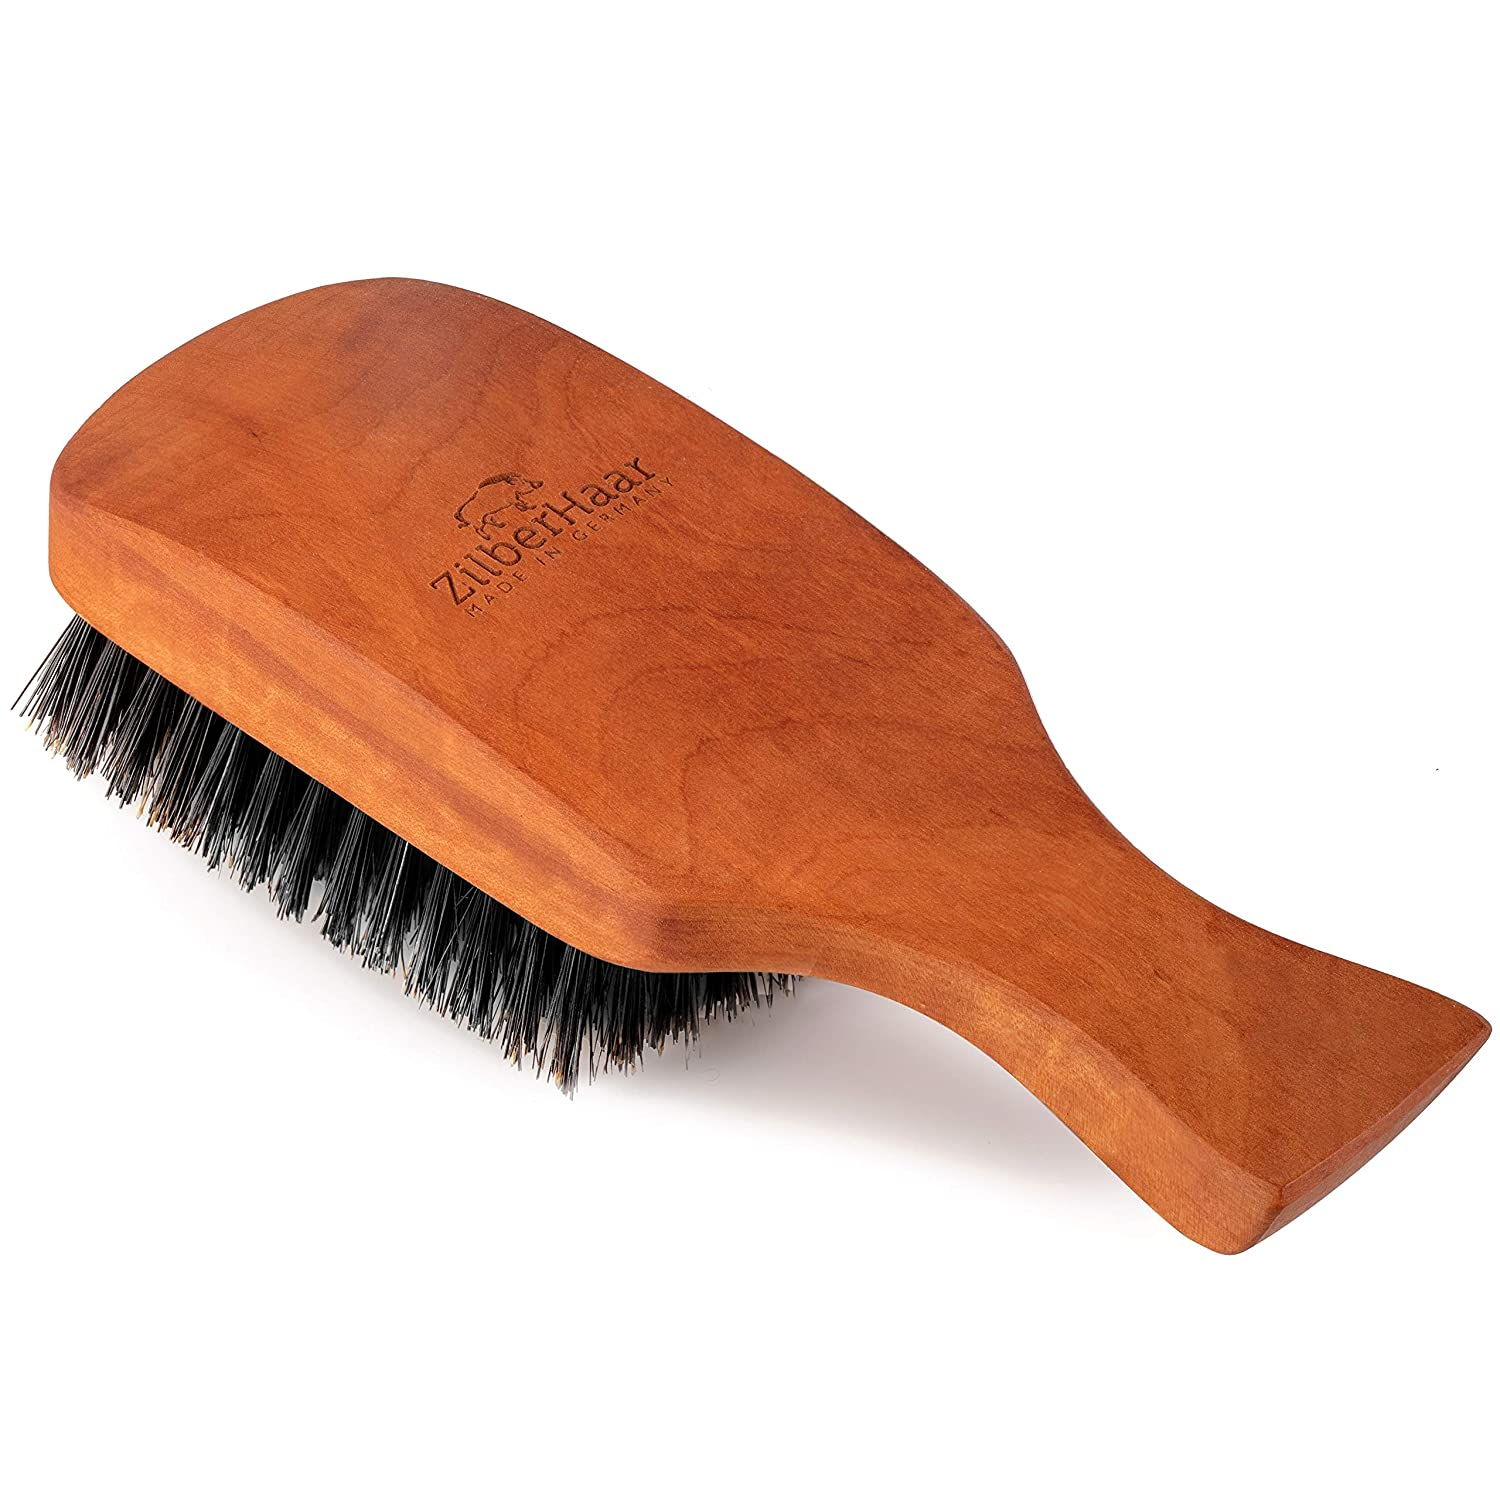 ZilberHaar Major - Hair & Beard Brush - Natural Boar Bristles and Pear Wood - All Beard and Hair Types - Best for Medium to Thick Long Beards - A Must-Have Grooming Tool for Men who Like it Big